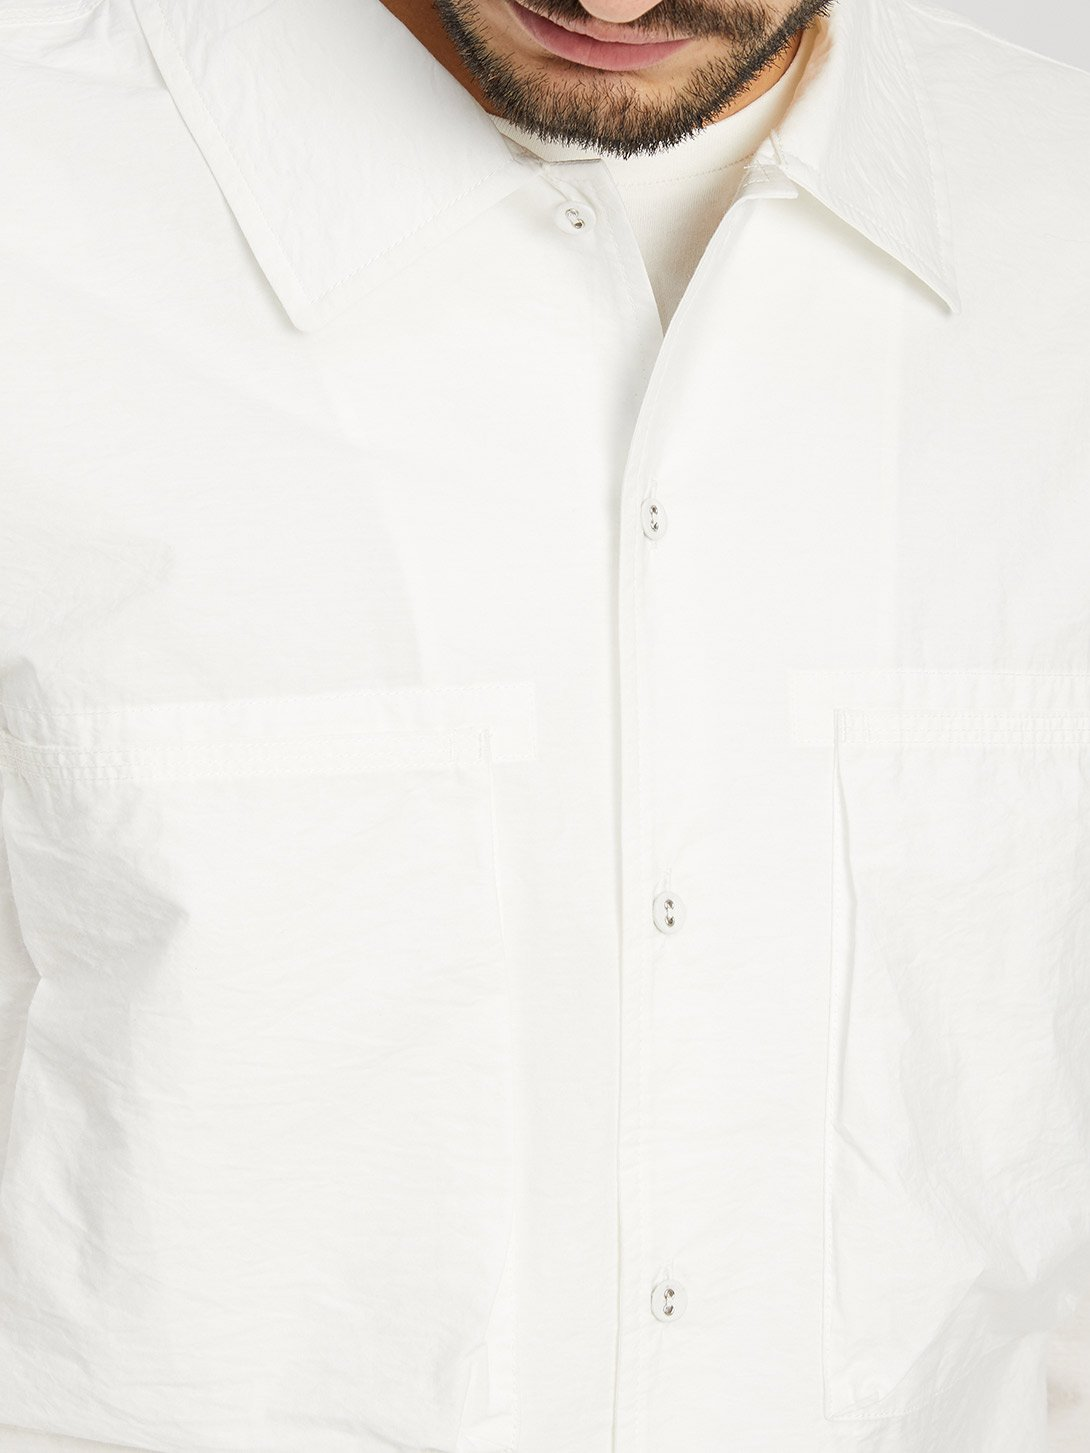 WHITE button down shirt for men corsa shirt jacket ons clothing